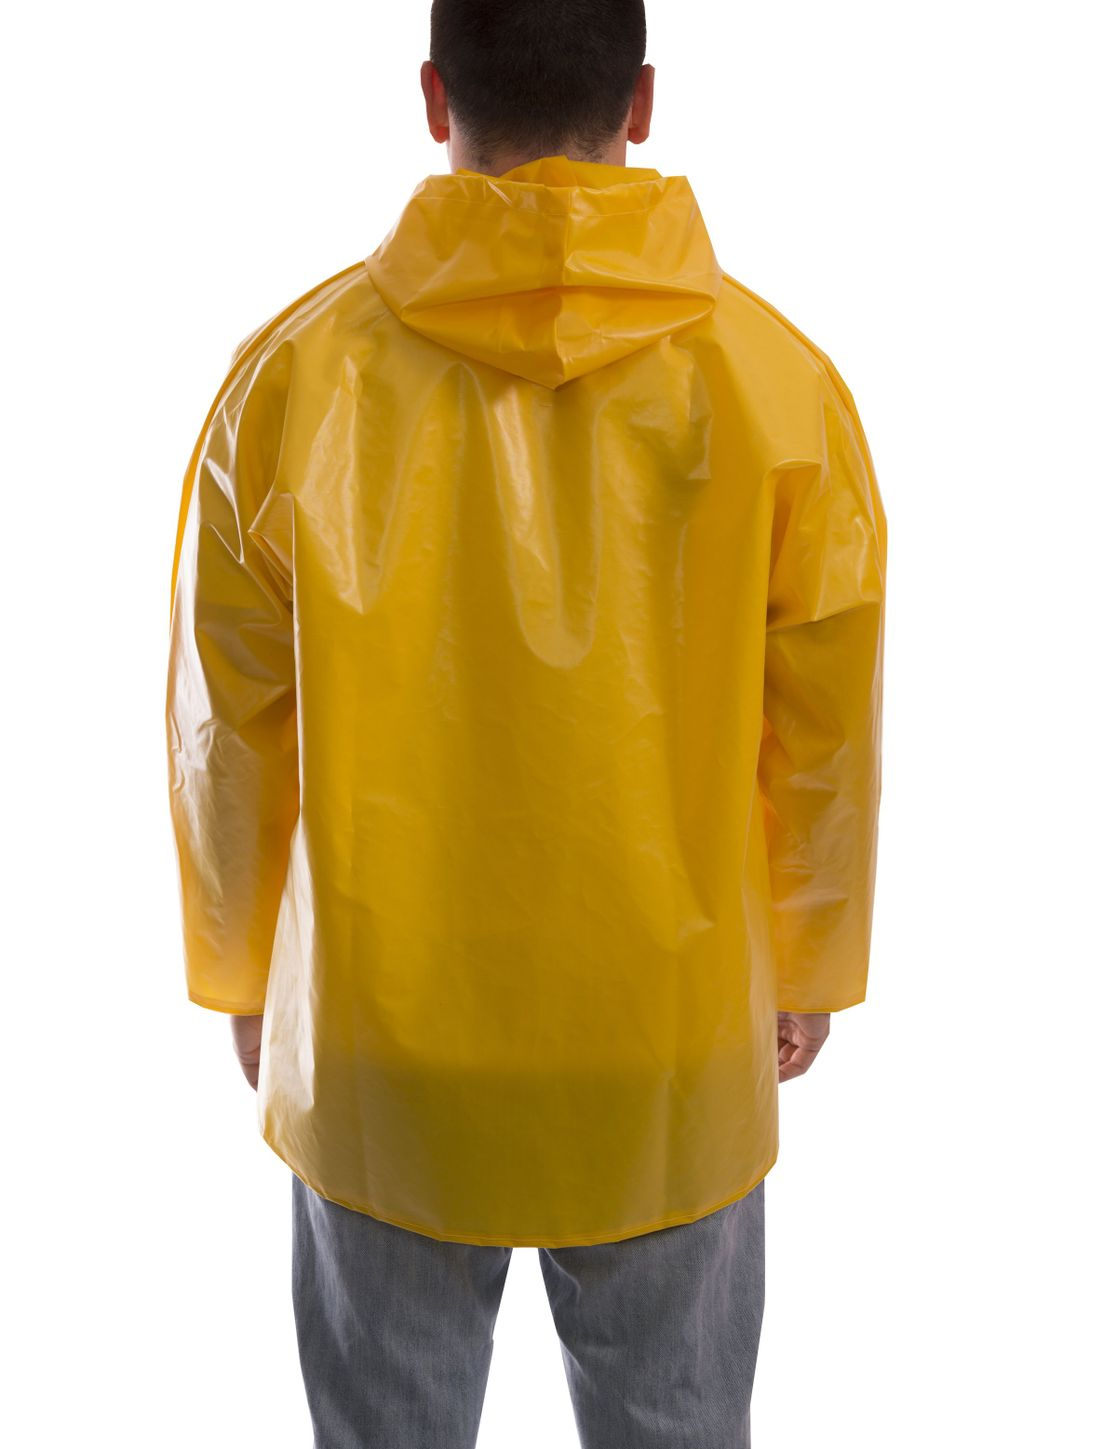 tingley-iron-eagle-chemical-resistant-jacket-polyurethane-coated-with-attached-hood-gold-back.jpg